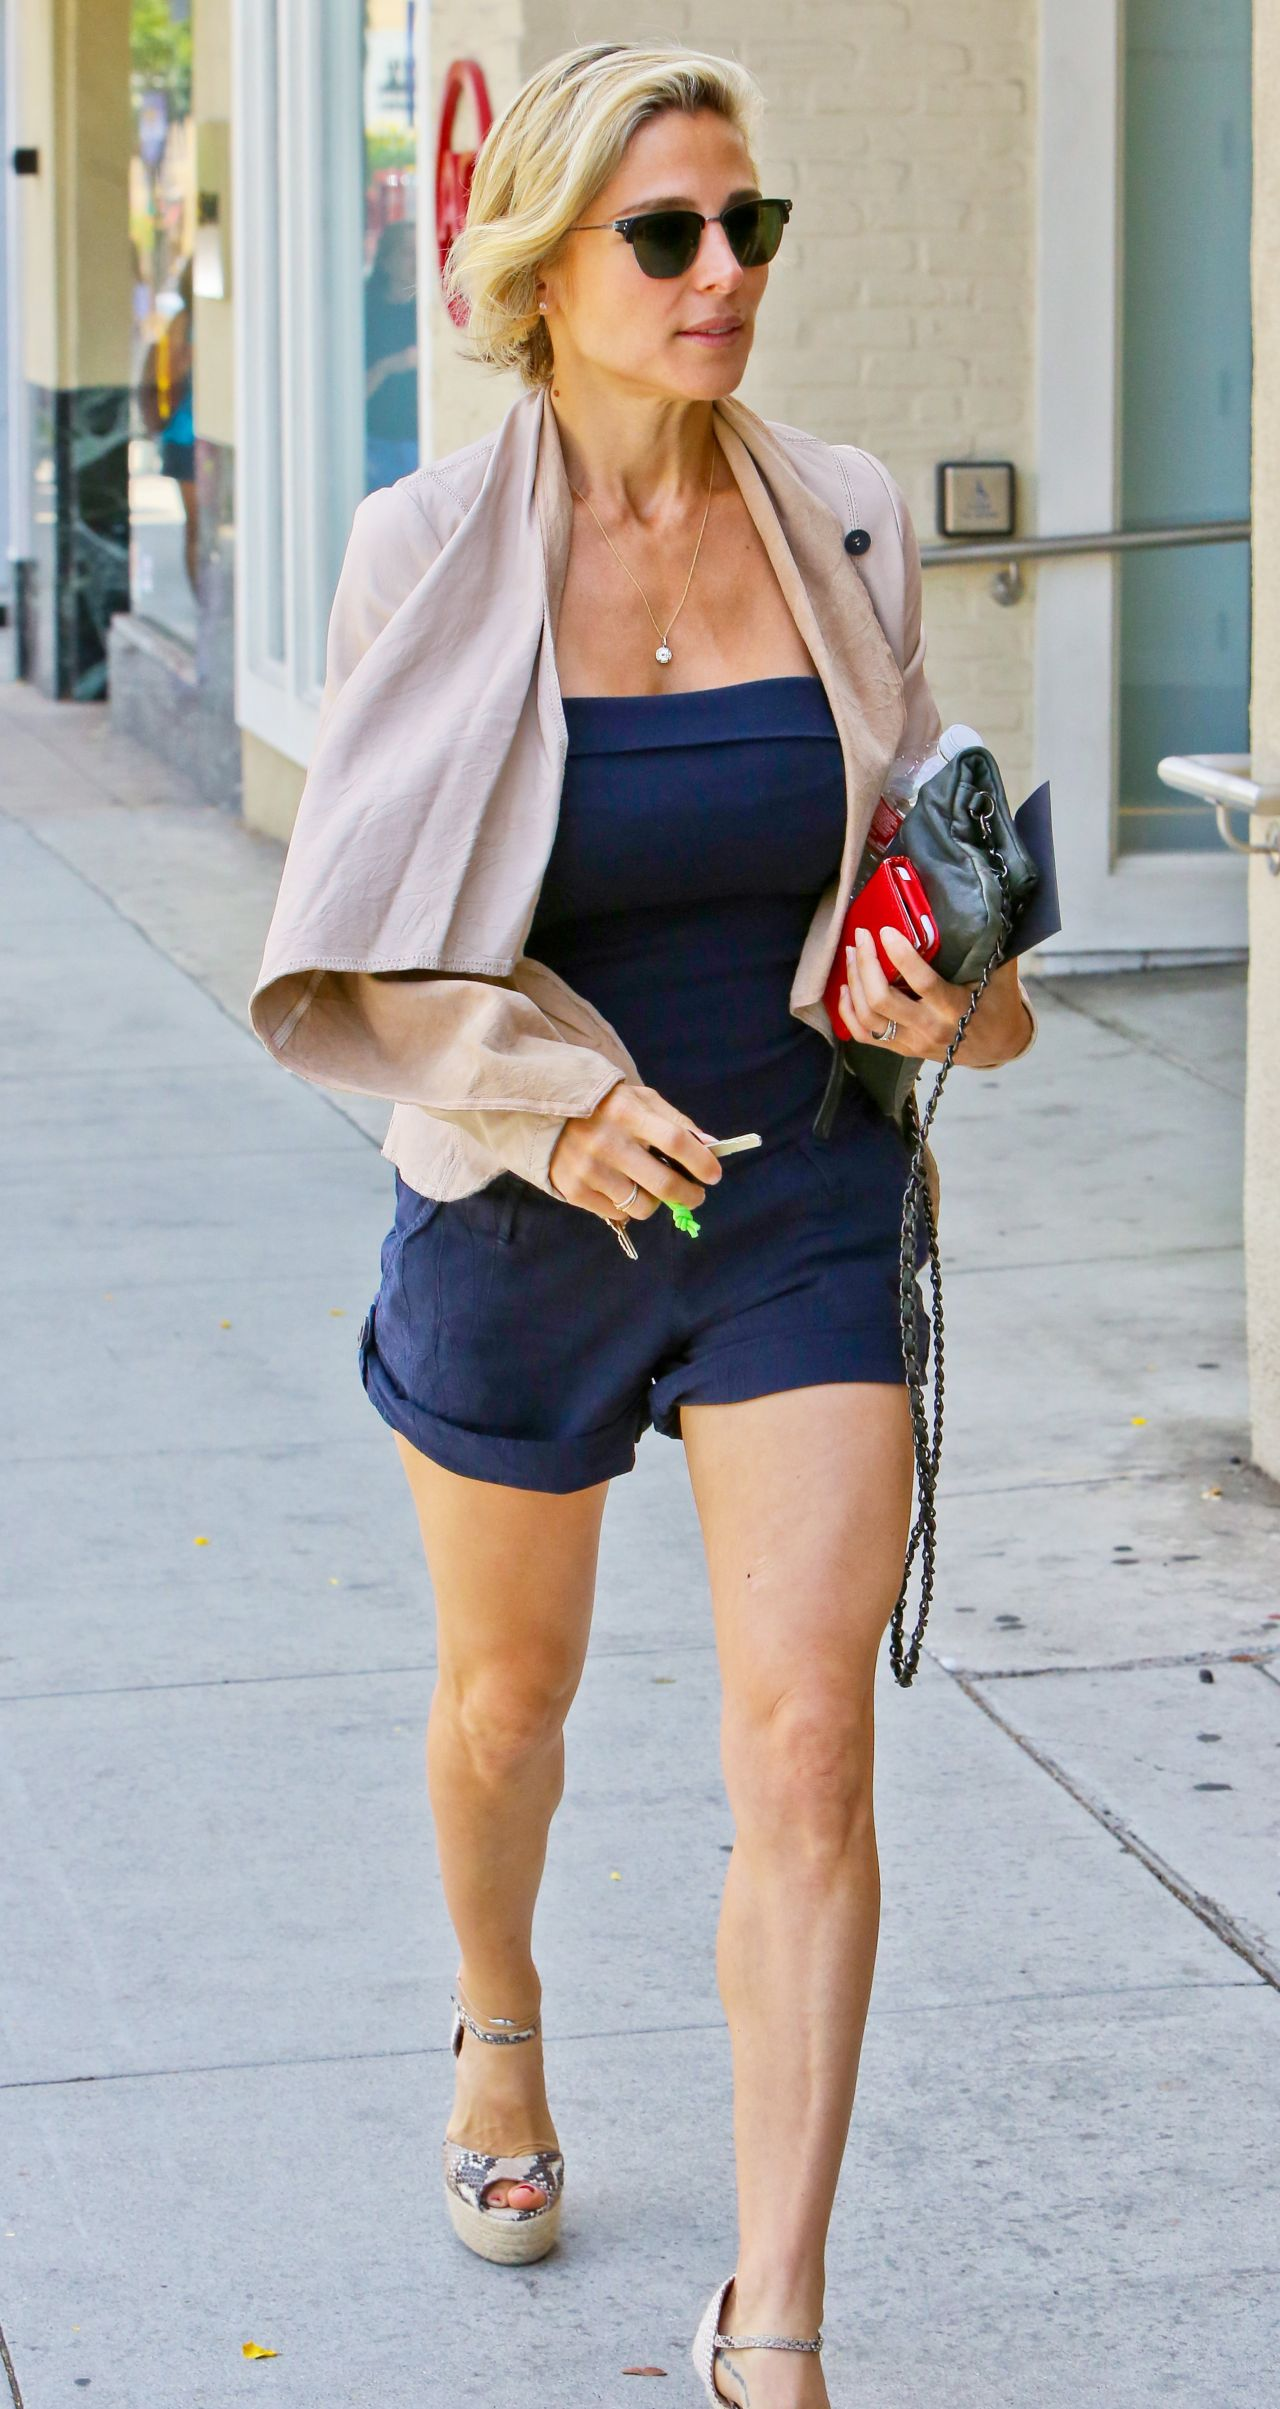 Elsa Pataky Hot Legs - Shopping In Beverly Hills - August 2014-9365